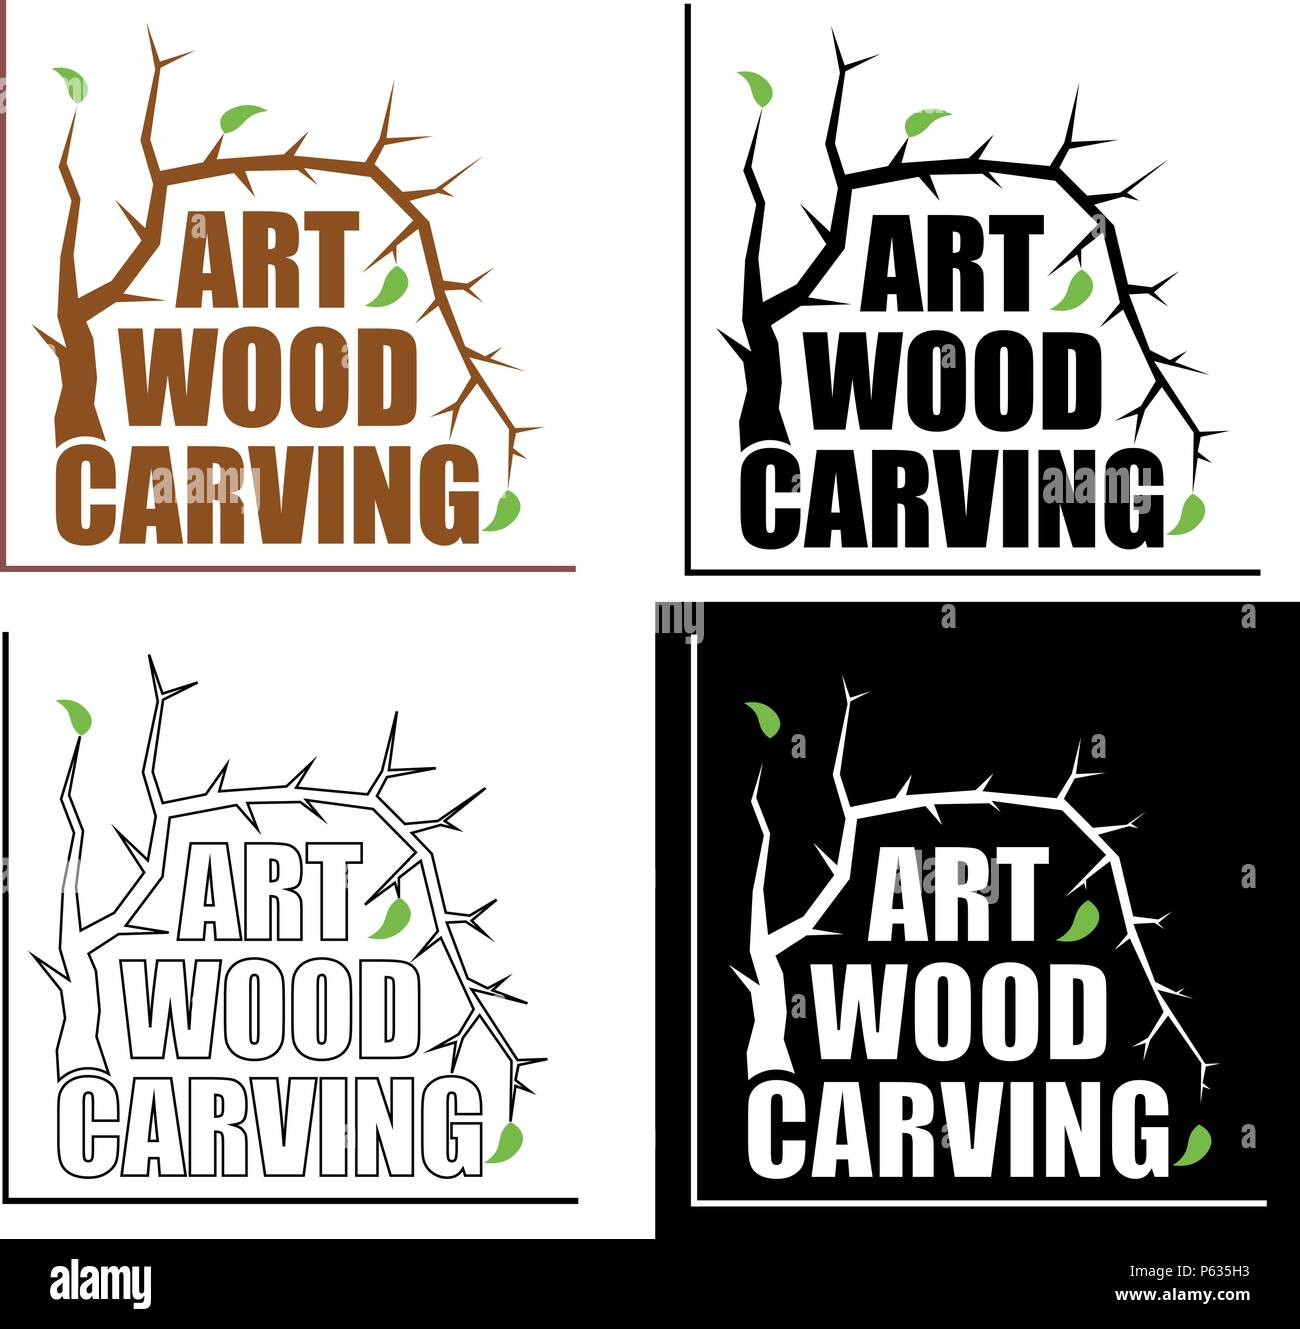 artistic wood carving with tree leaves Creative minimalist logo - Stock Vector